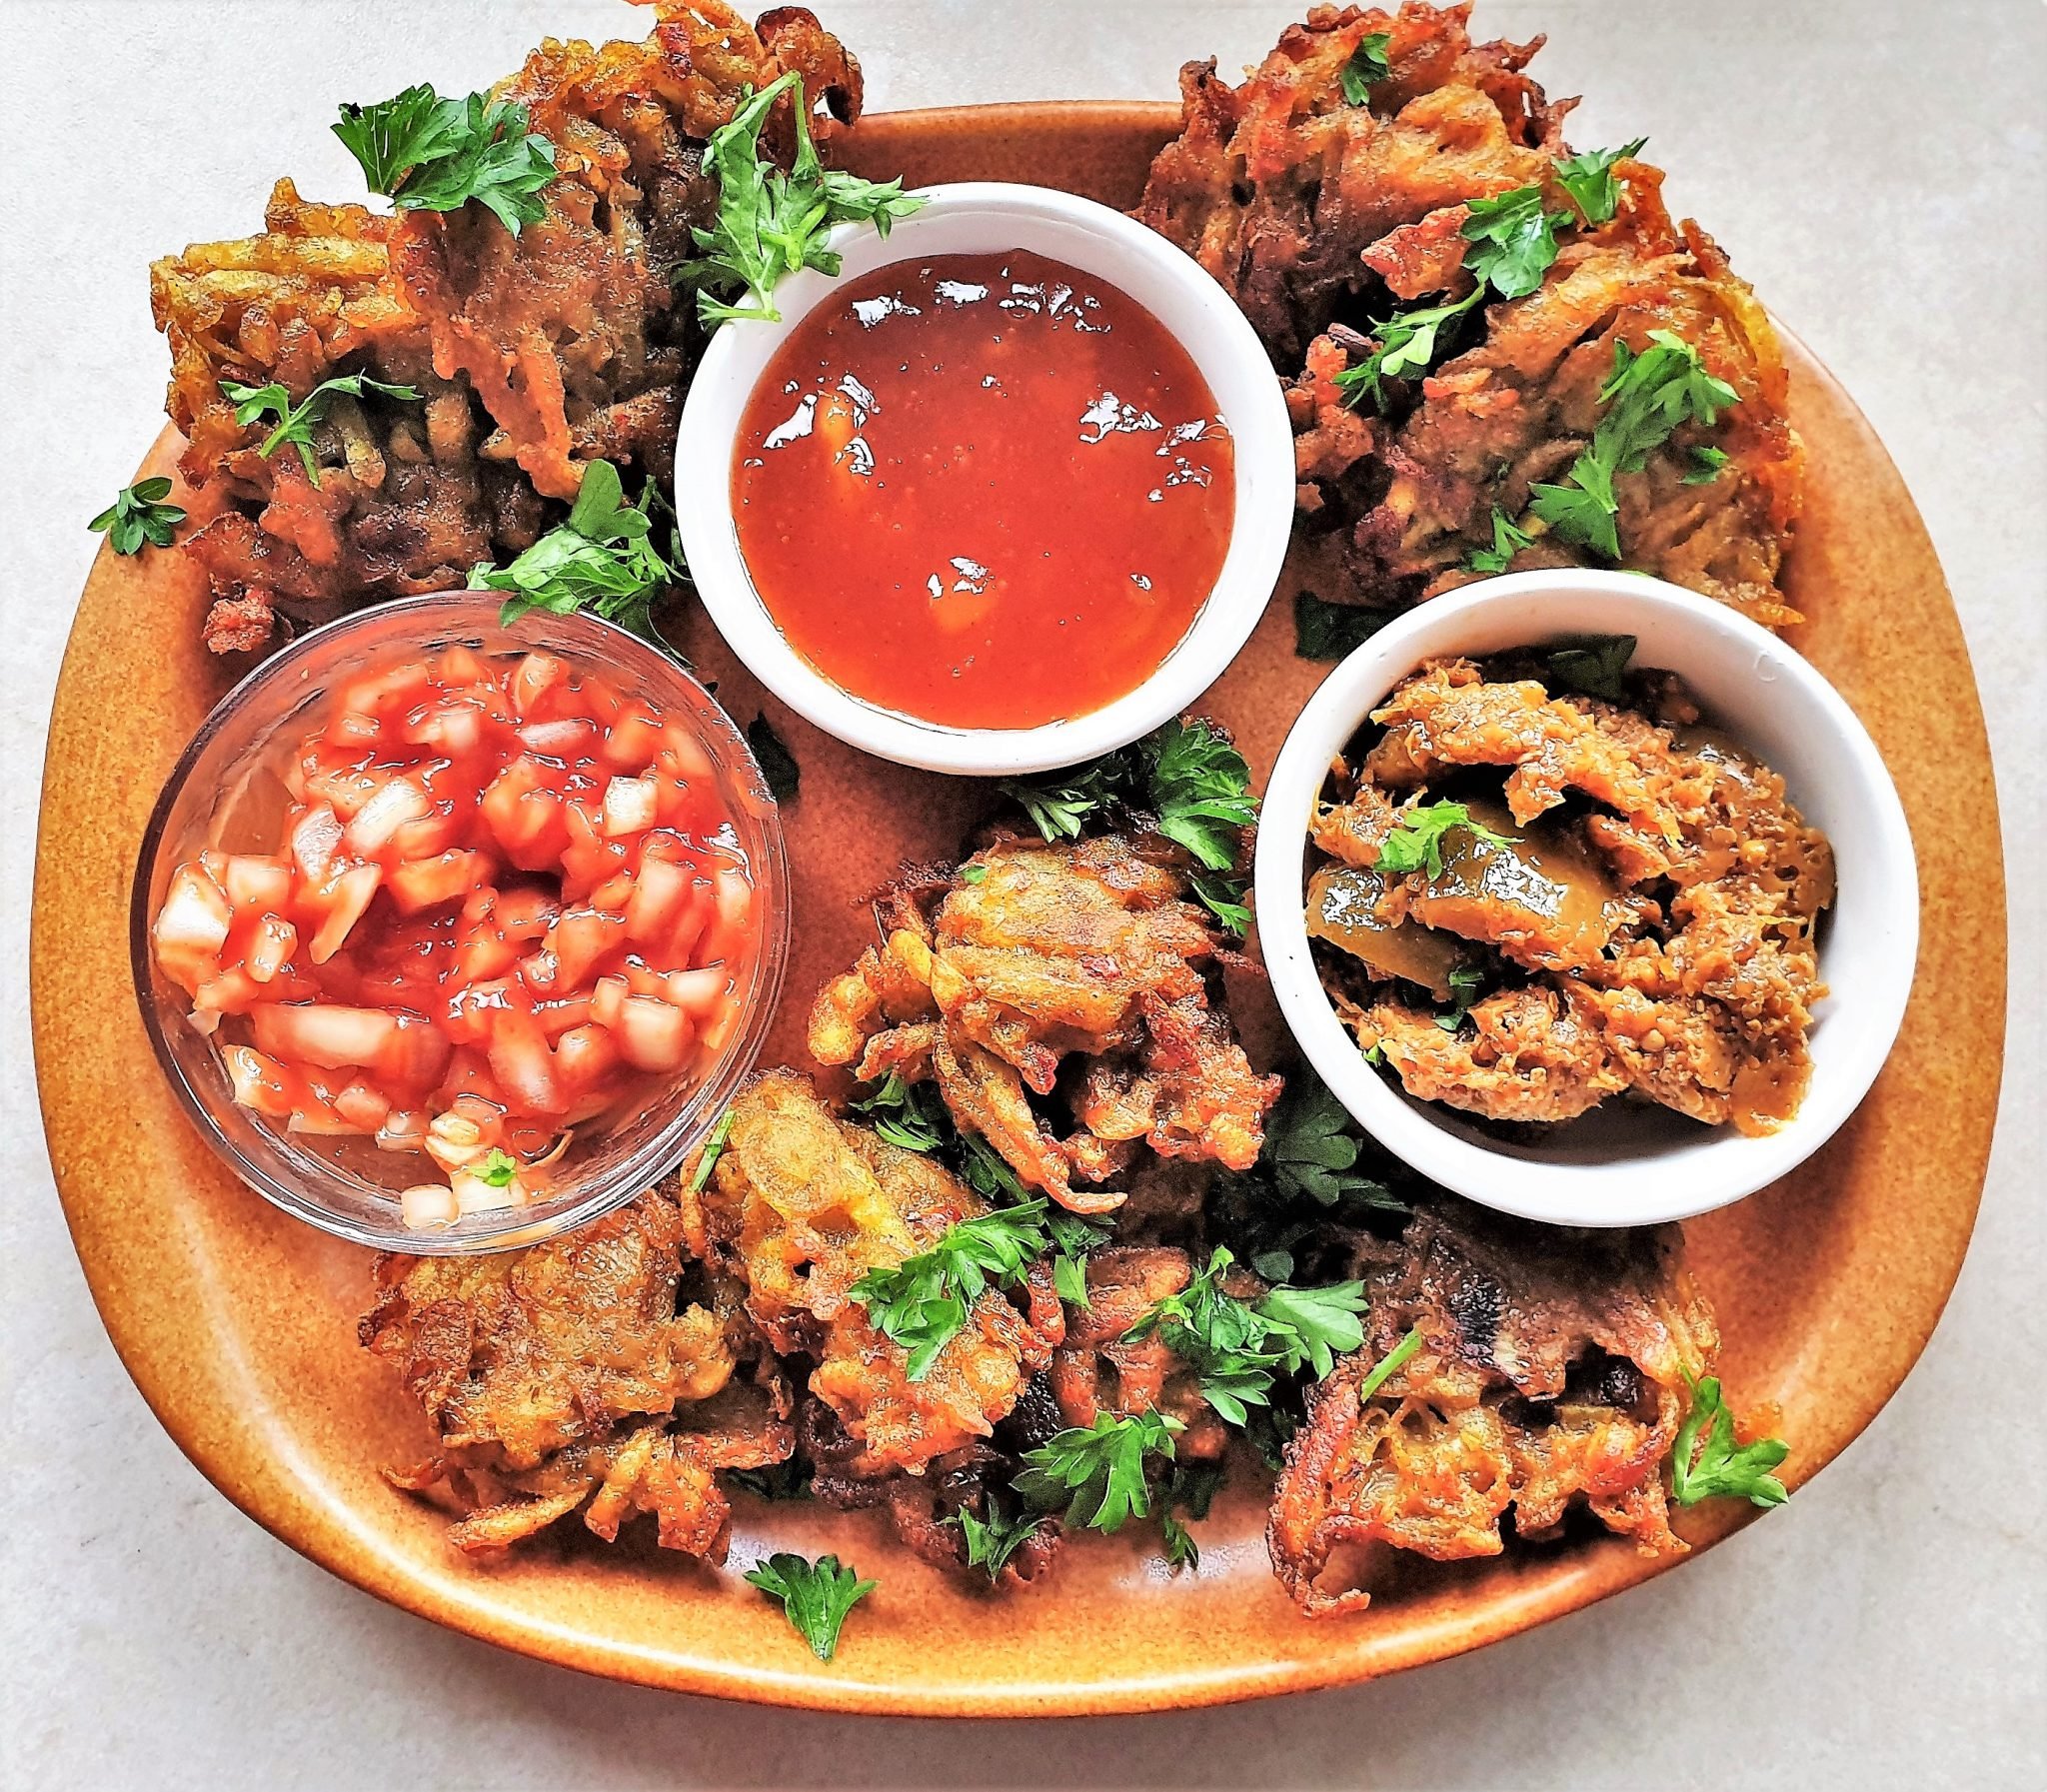 A plate of potato and onion bhajis with dipping sauces.